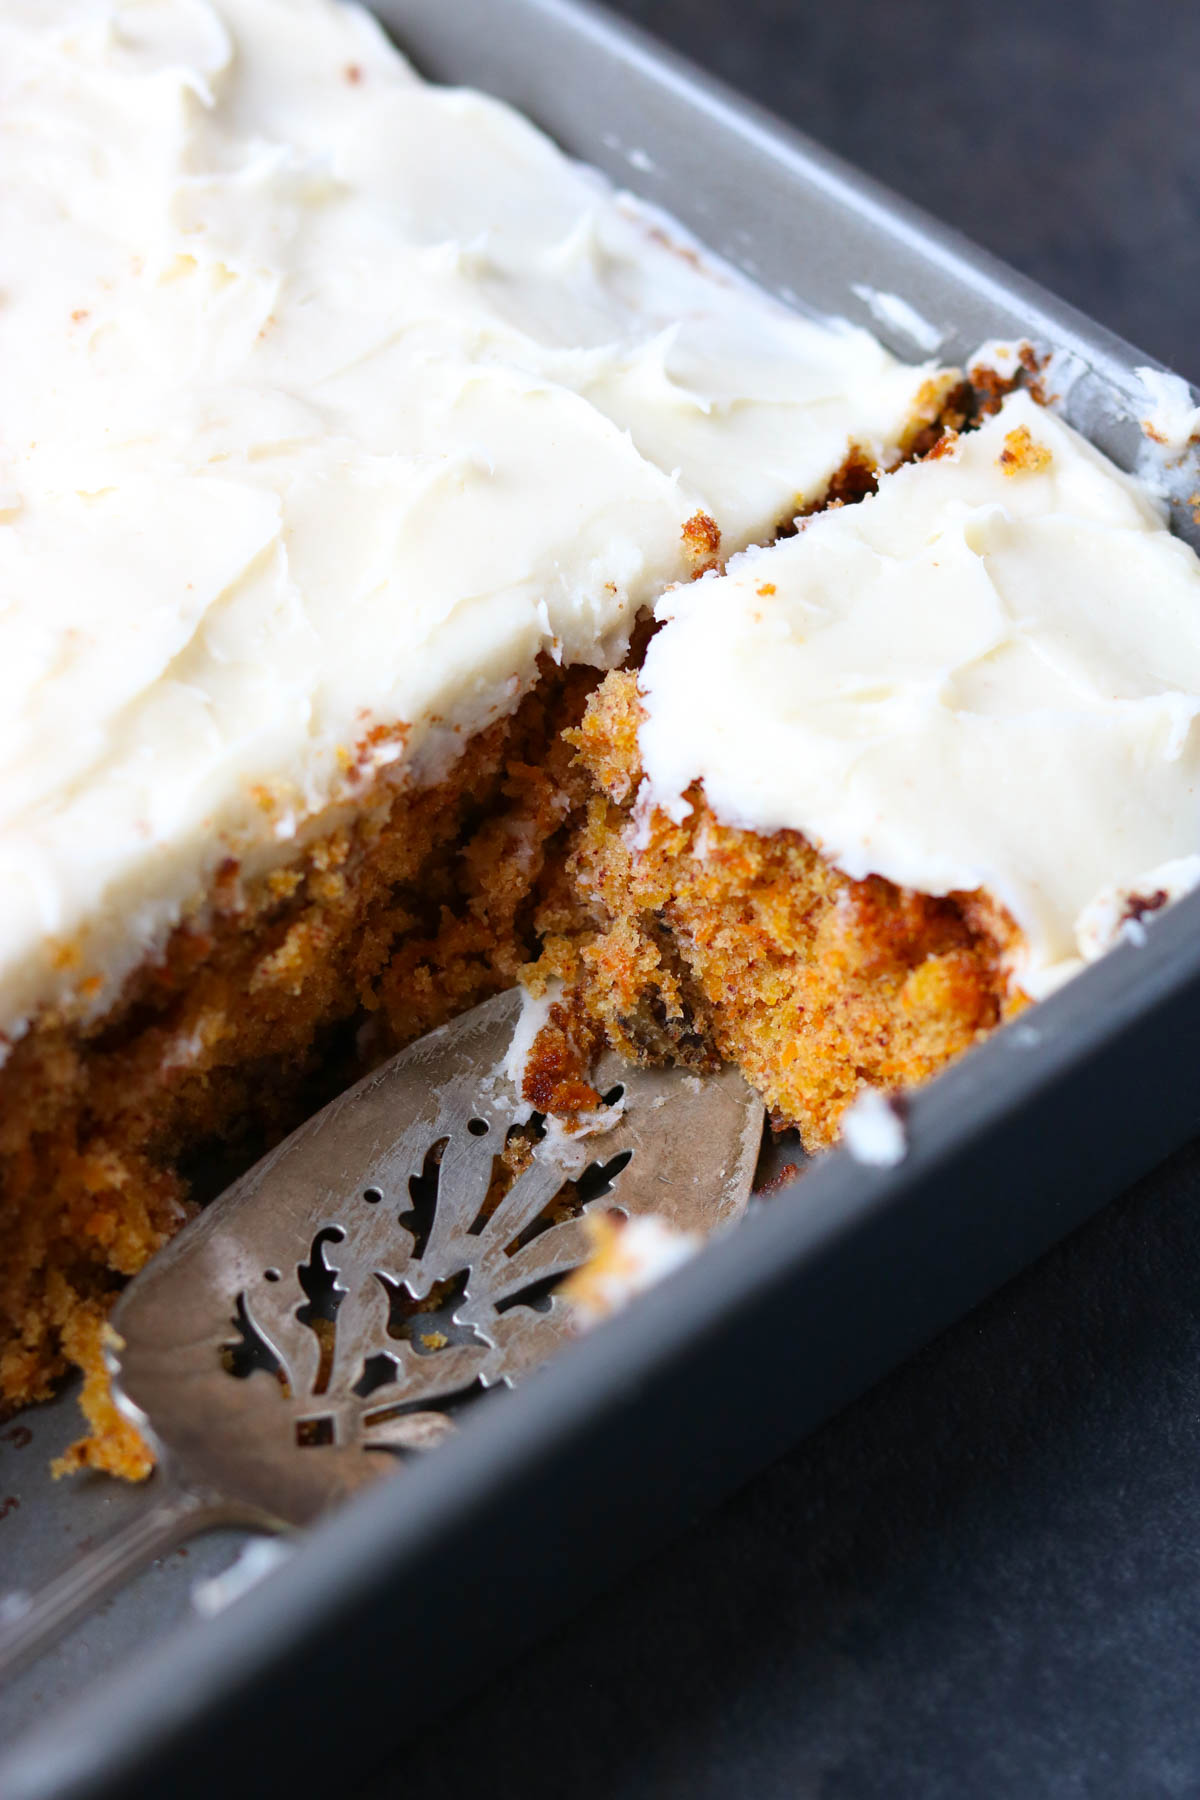 Grandma's Carrot Cake with Cream Cheese Buttercream in a 9x13 pan